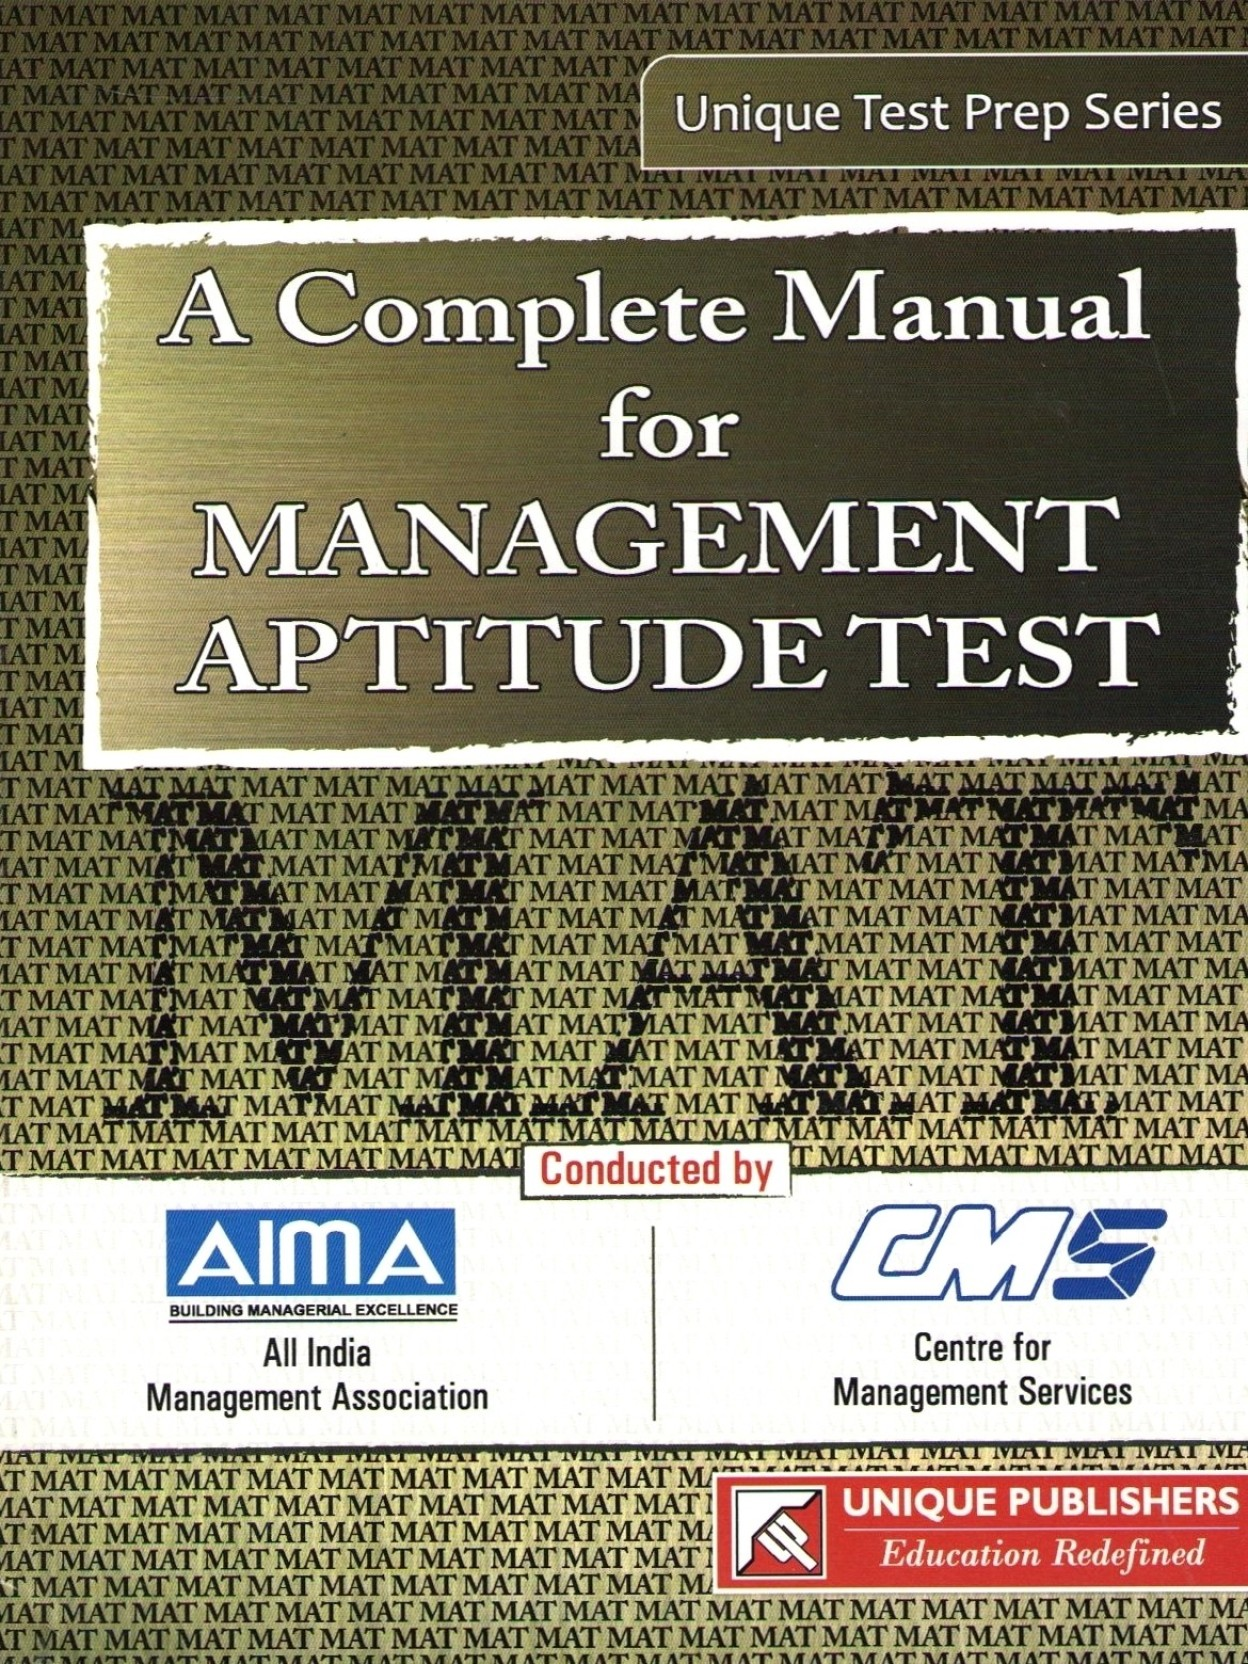 A Complete Manual for Management Aptitude Test 1st Edition. Share